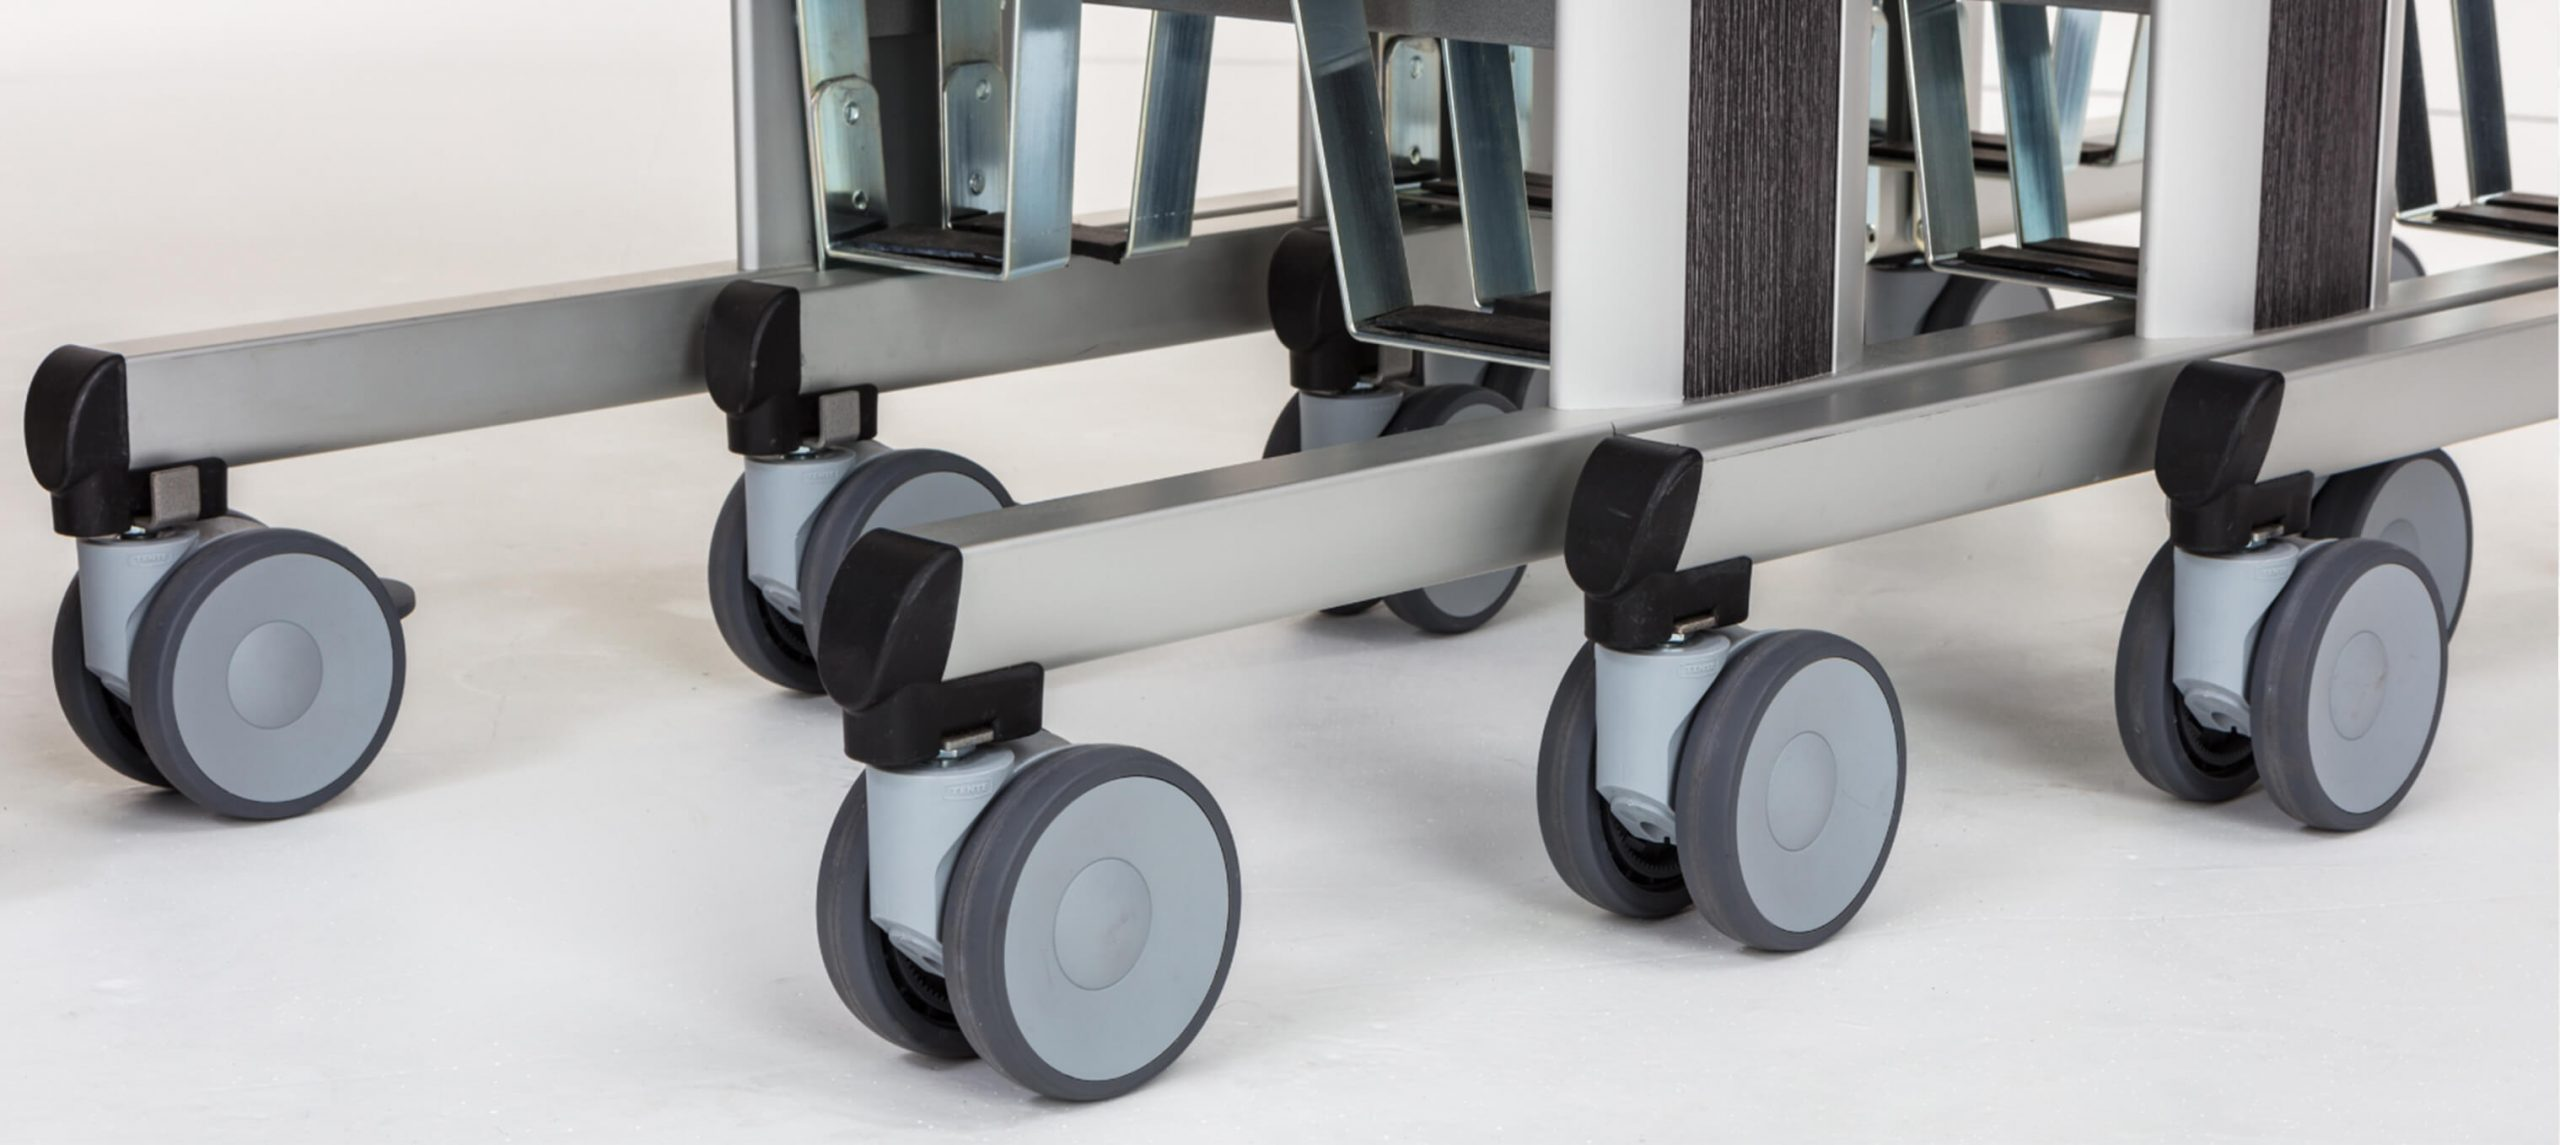 Room Service Trolley Zoom of Wheels